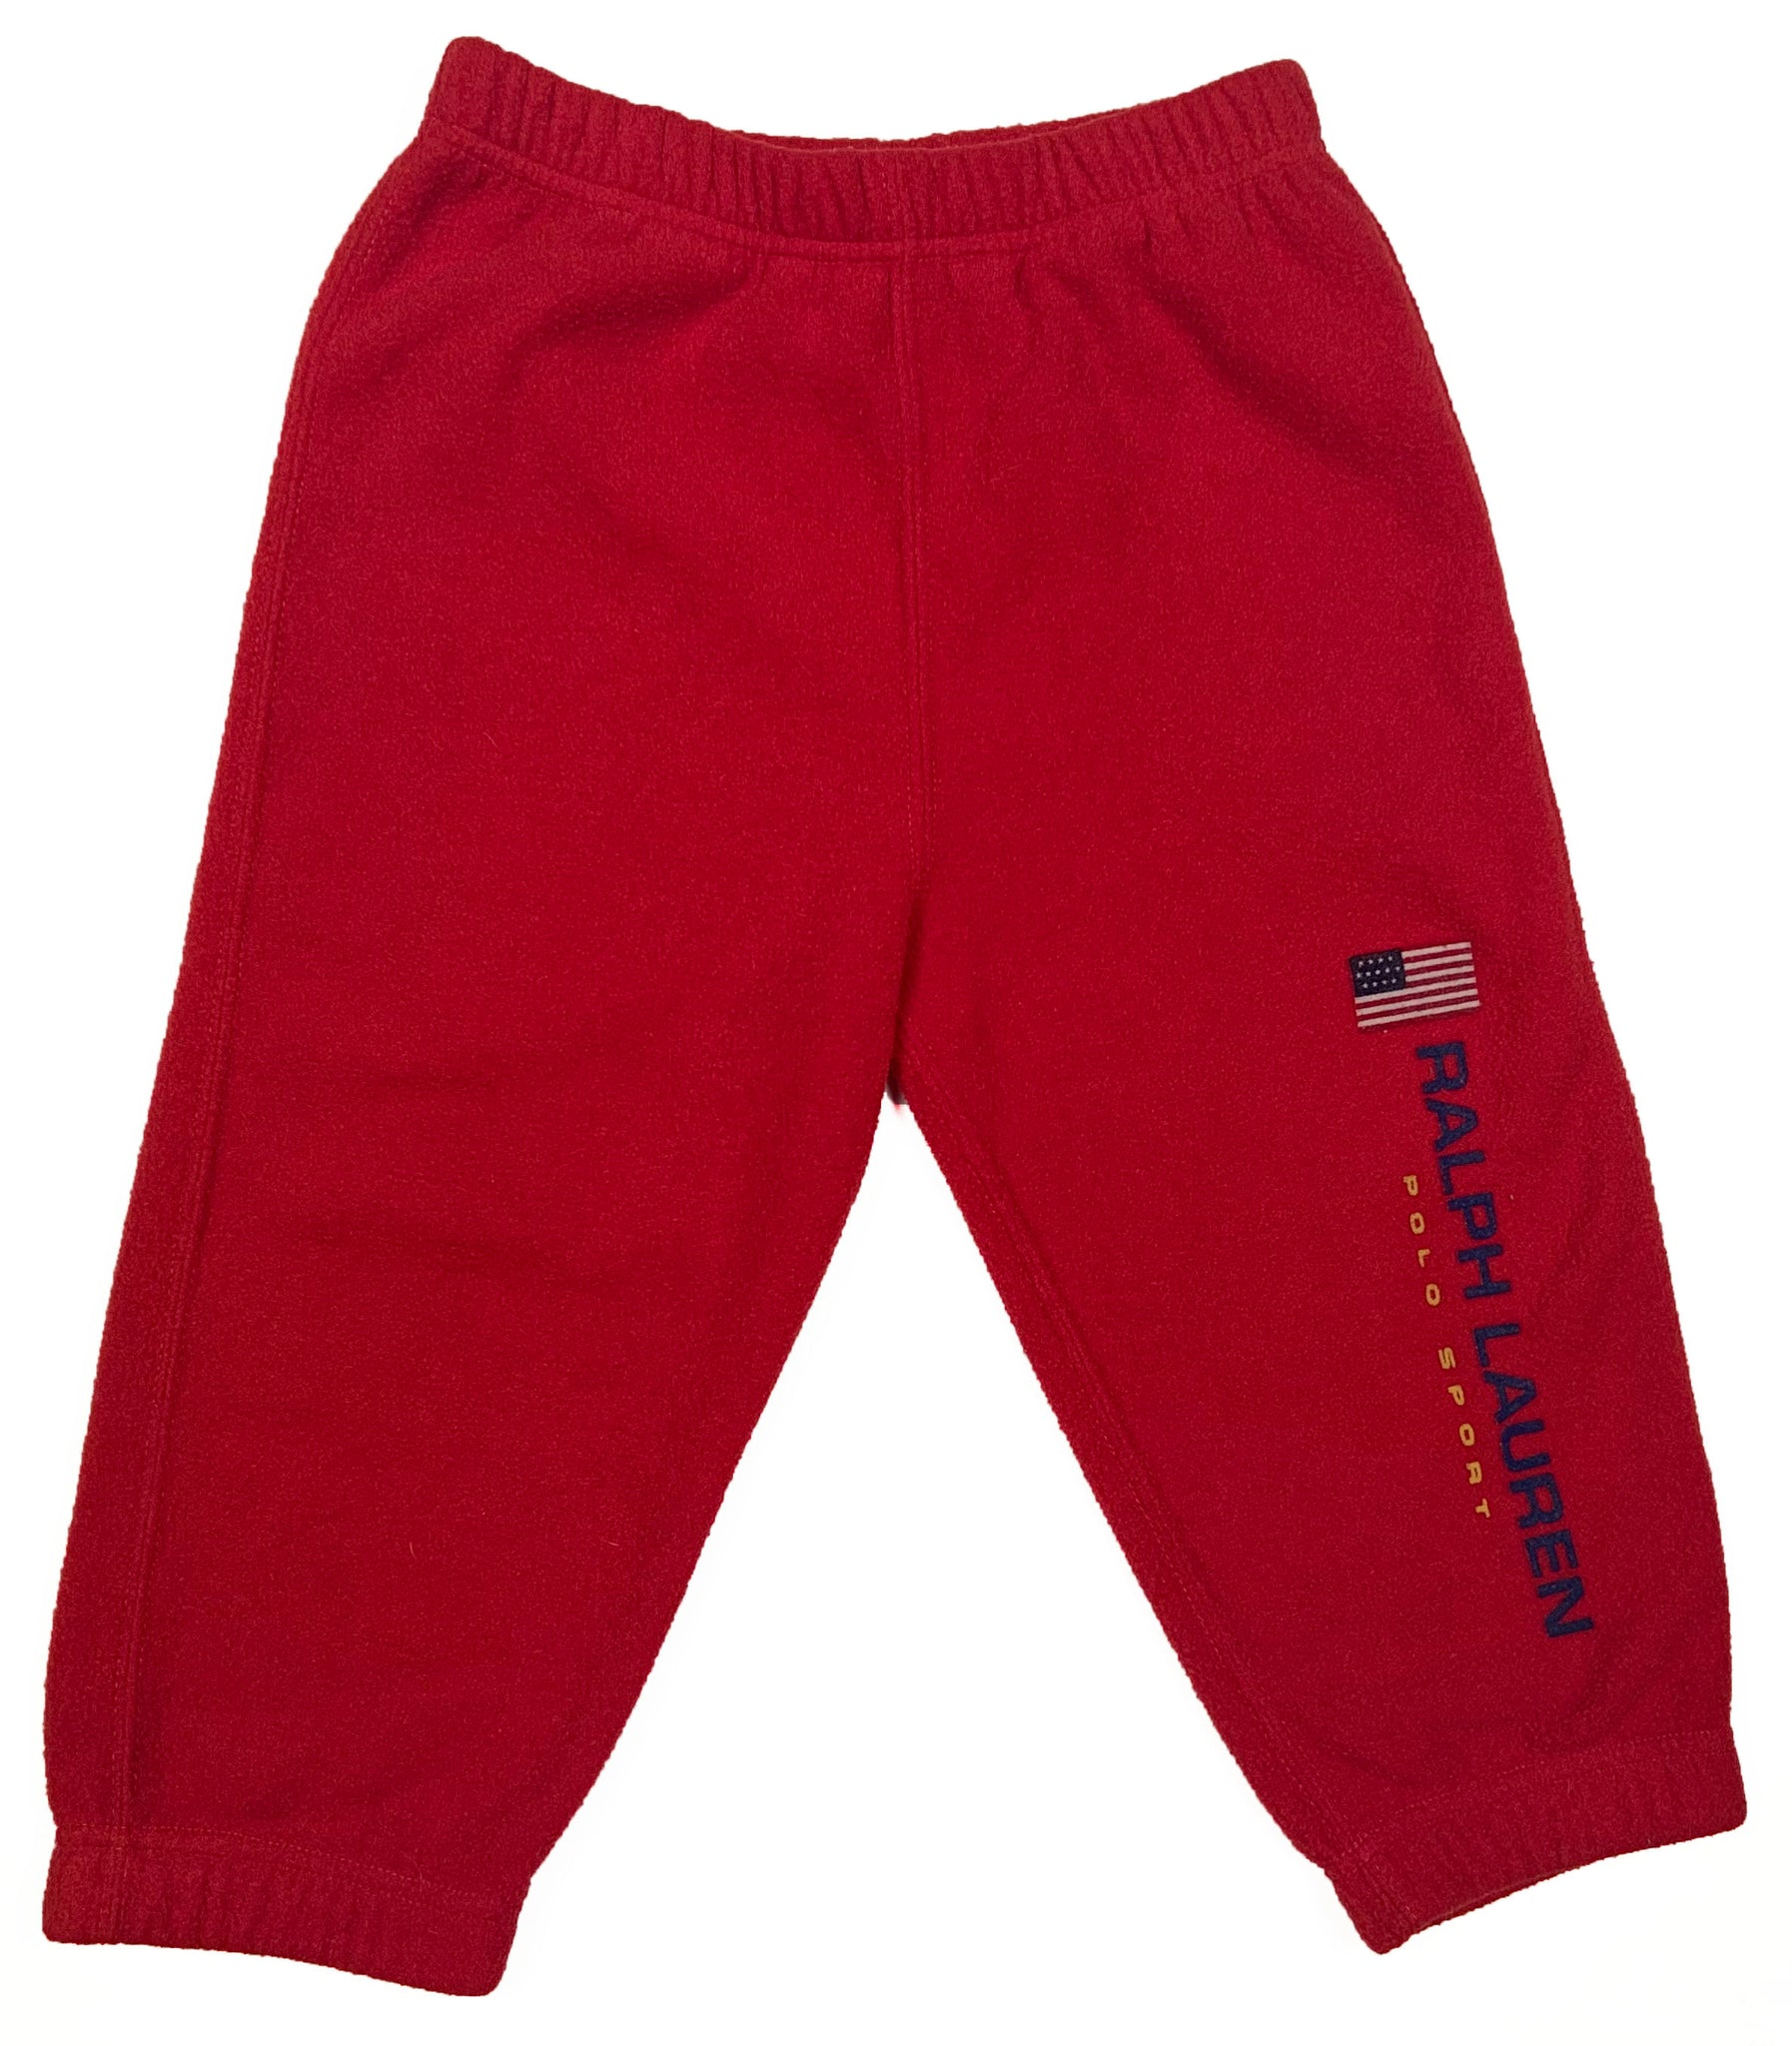 Ralph Lauren Polo Sport Fleece set Size 2T